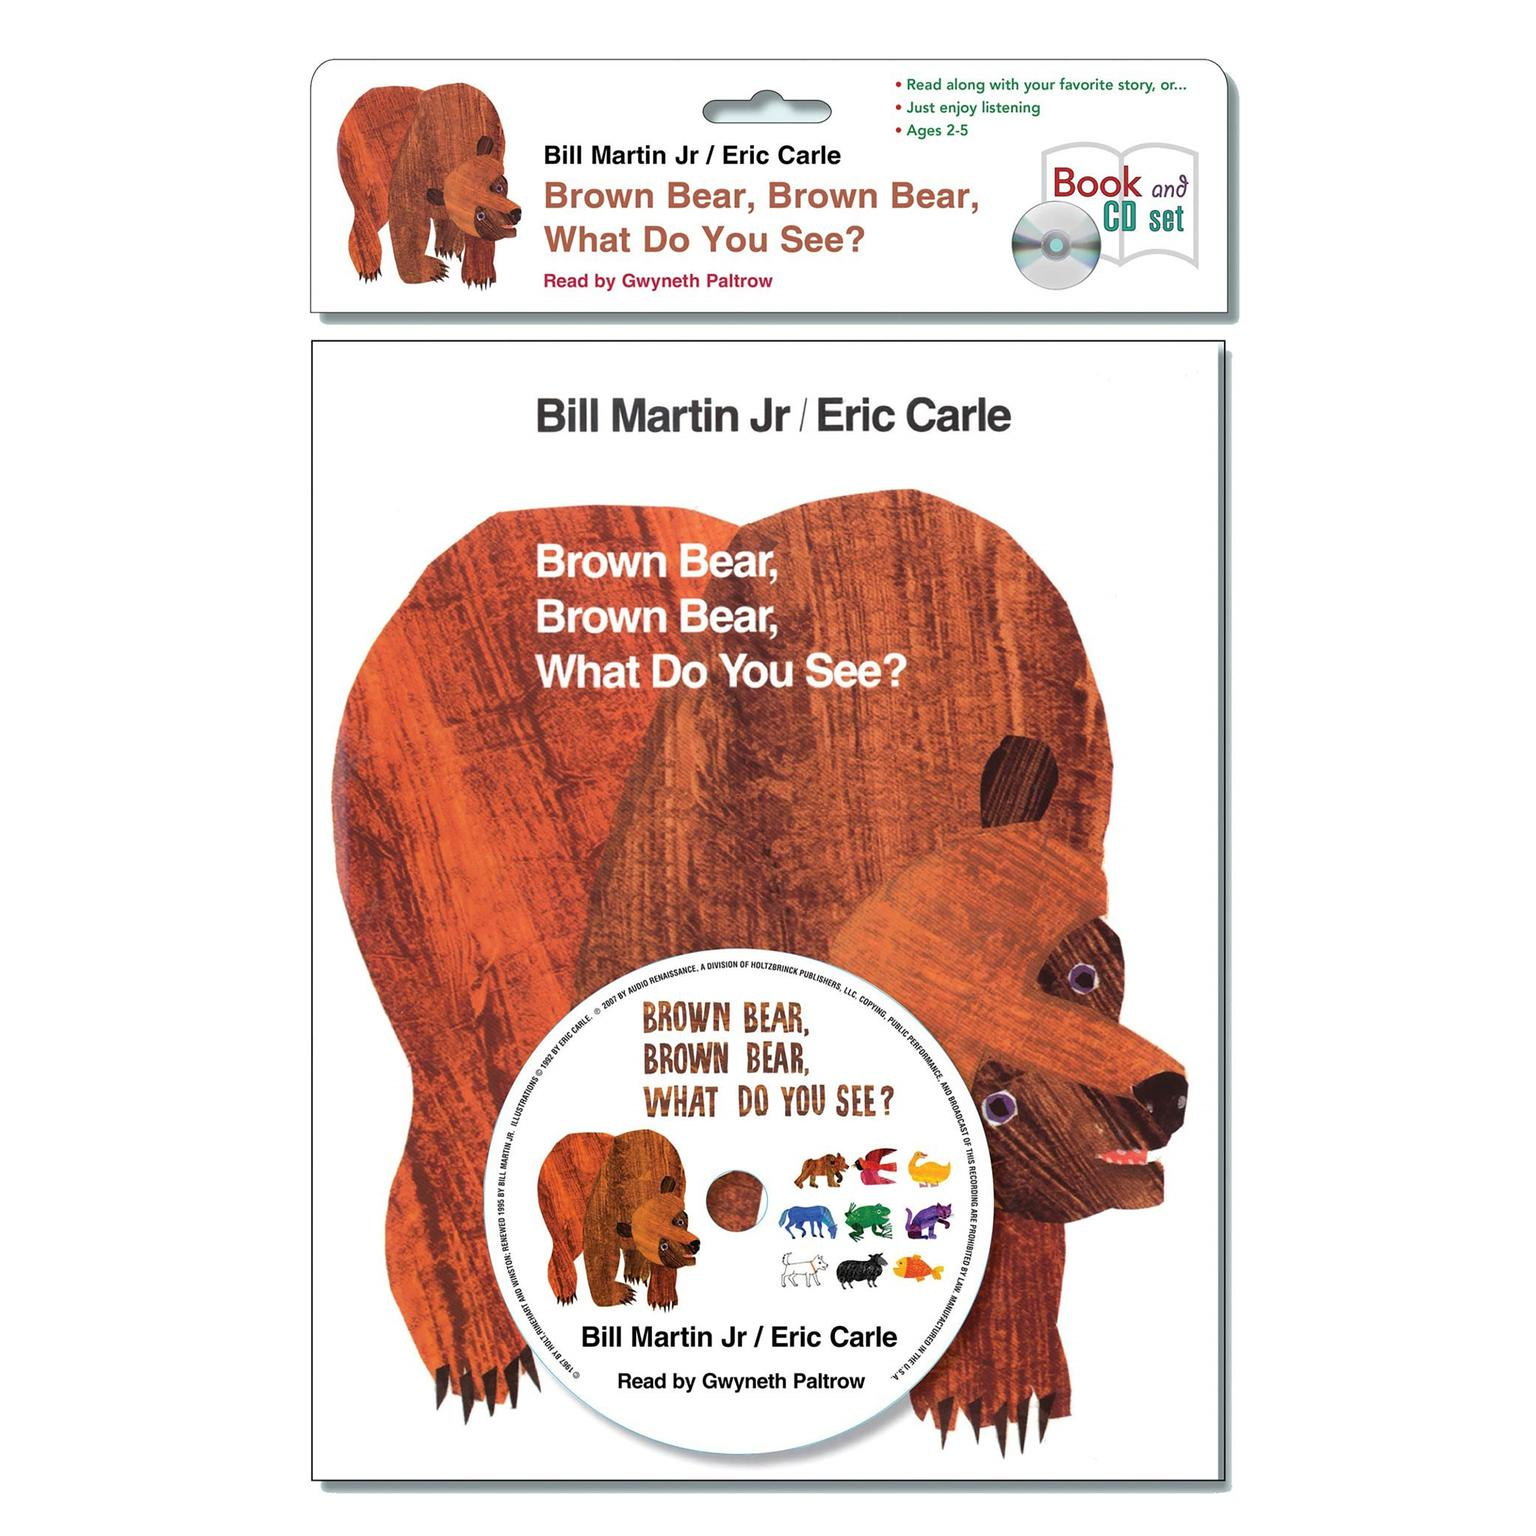 picture about Brown Bear Brown Bear Printable Book named Brown Endure, Brown Go through, What Do On your own Watch?: 40th Anniversary Model Audiobook